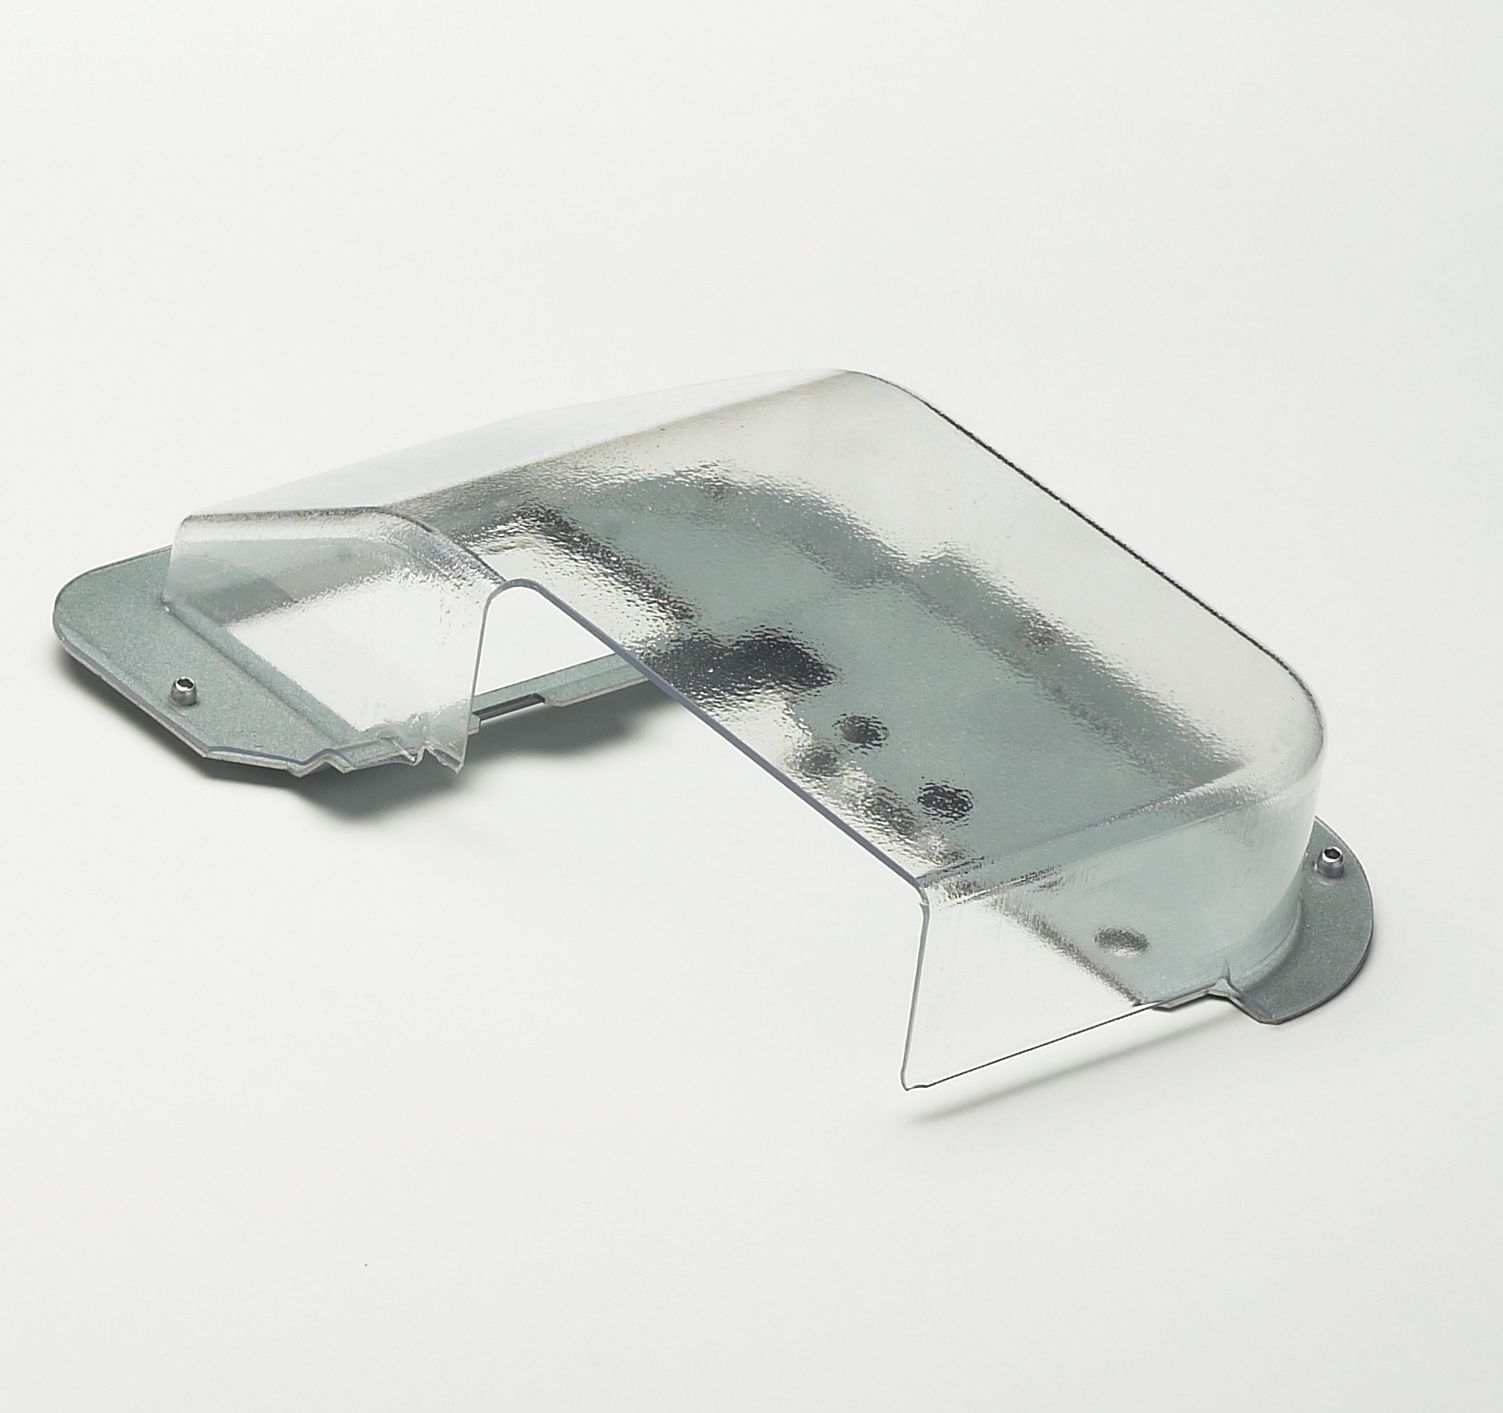 Perspex engineered parts